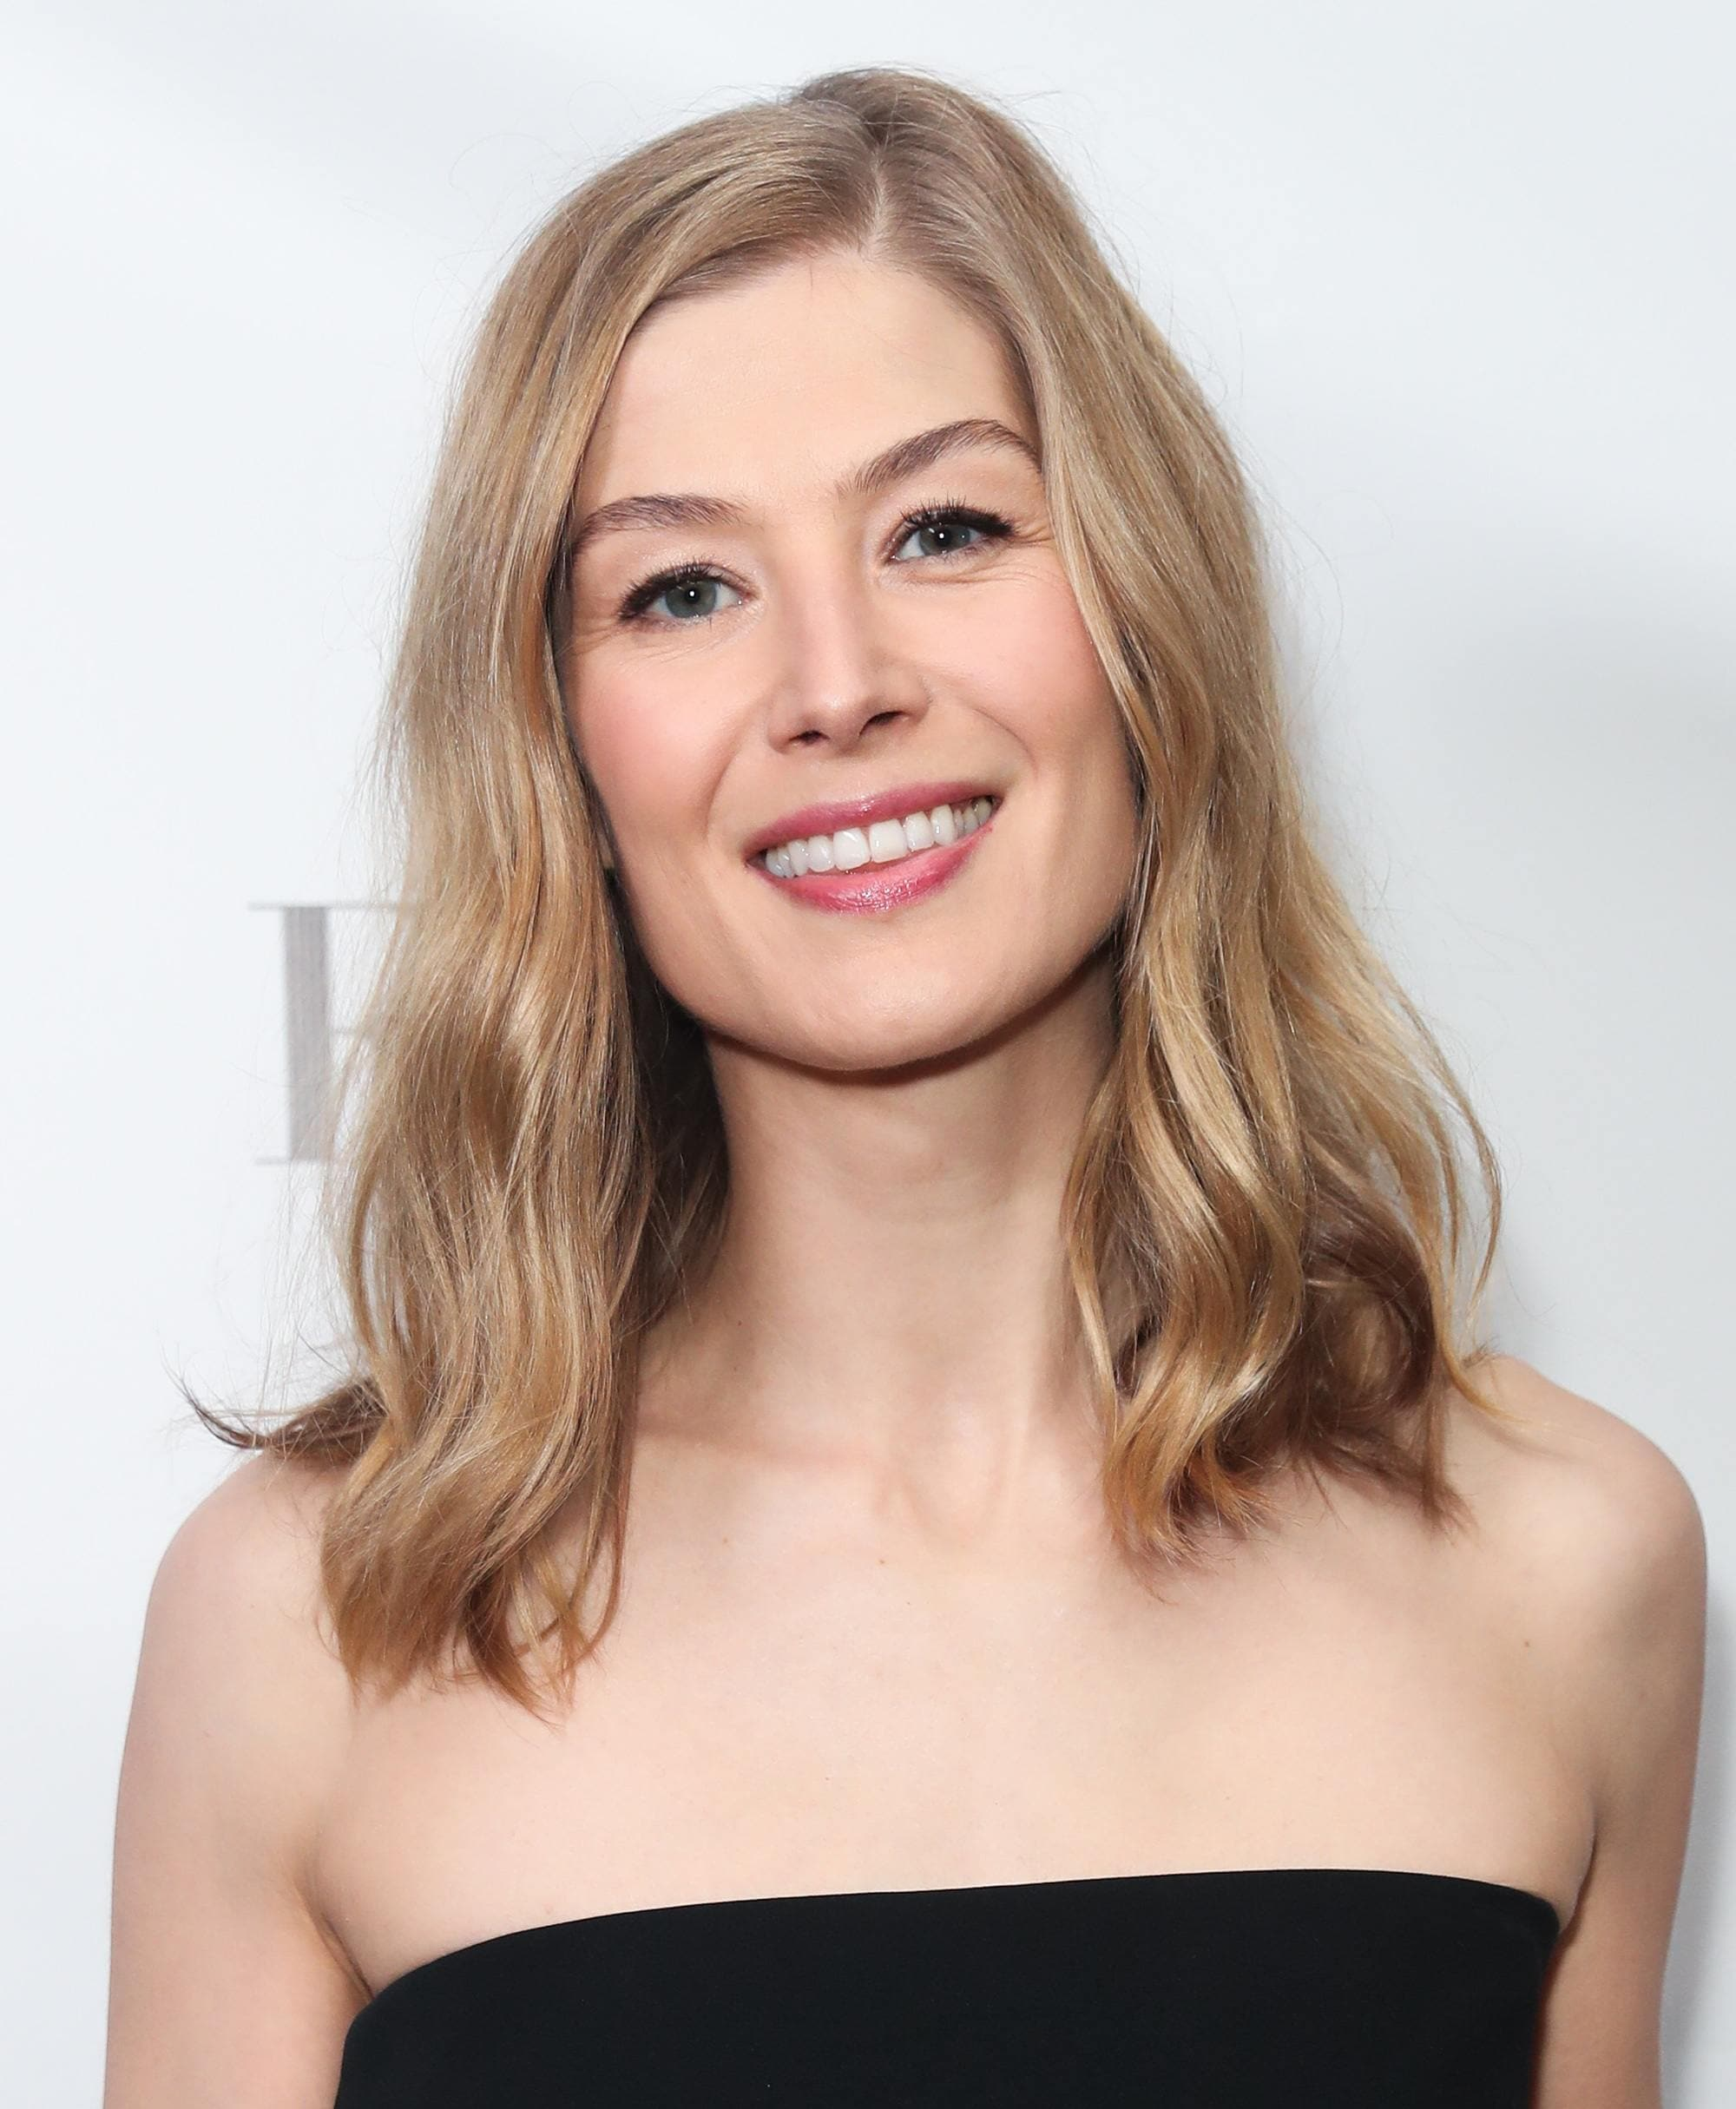 celeb hairstyles: gone girl actress rosamund pike with blonde loose curls